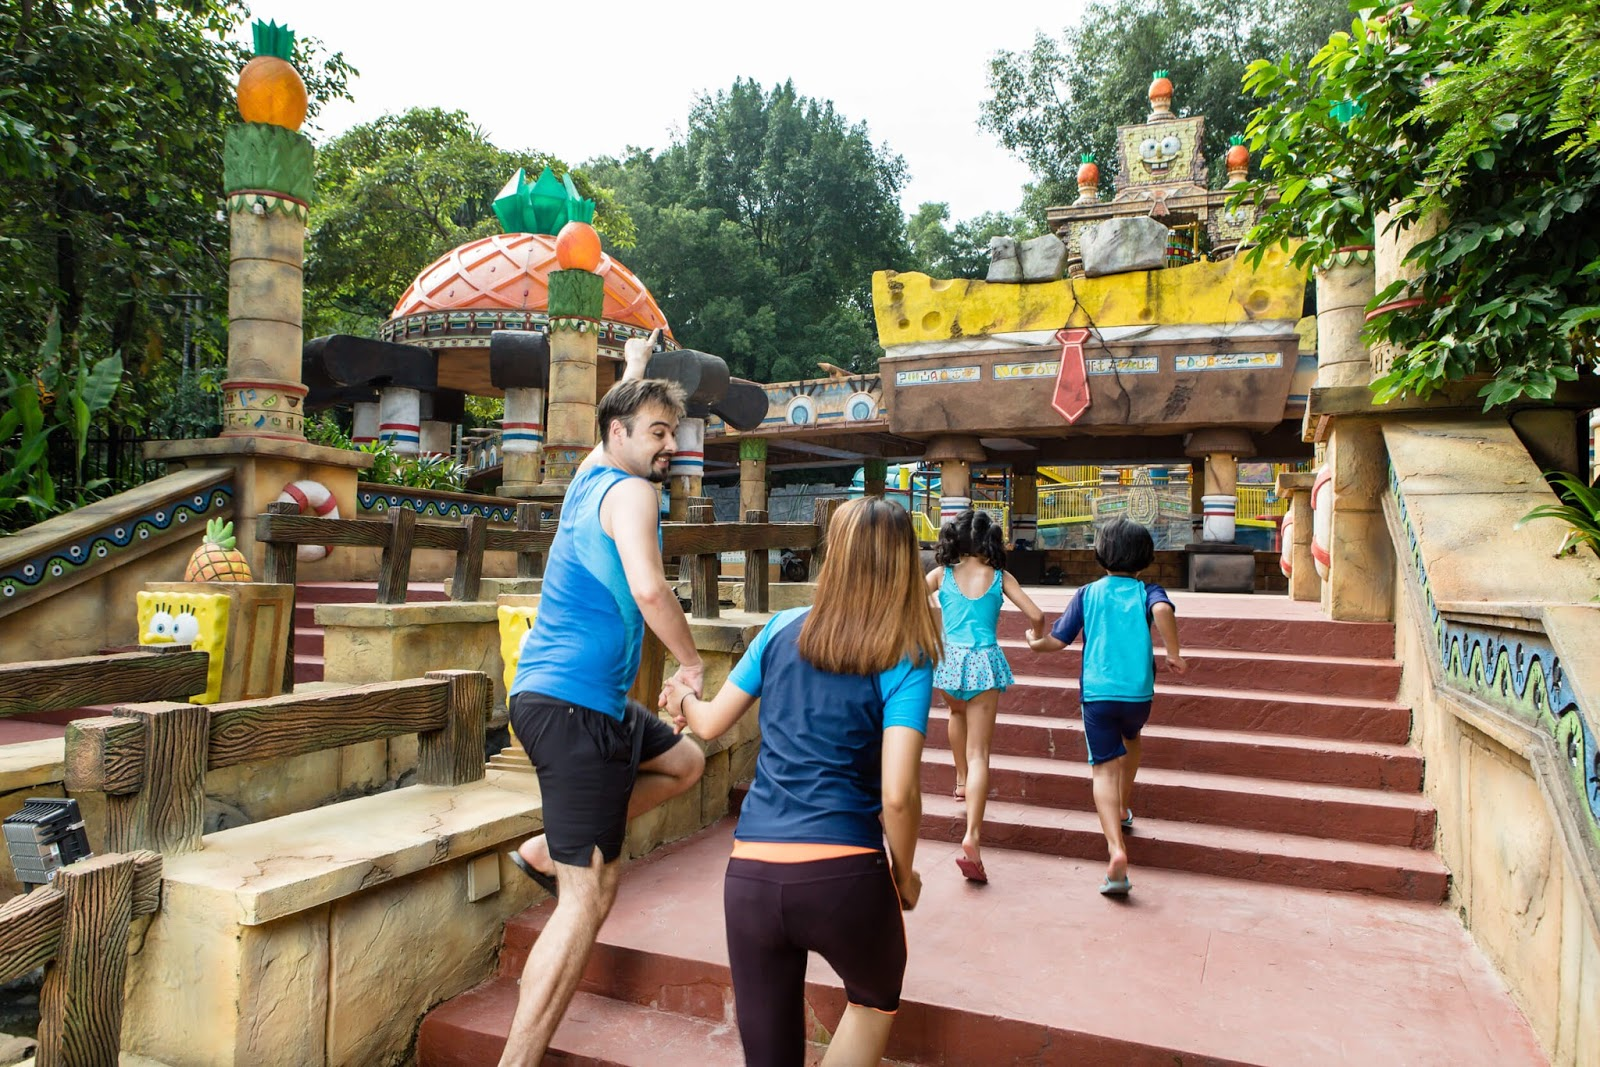 sunway lagoon 【how to use】 - present your either printed or mobile voucher to ticketing counter  for redemption - the voucher is valid only on the specified date - e-voucher will.